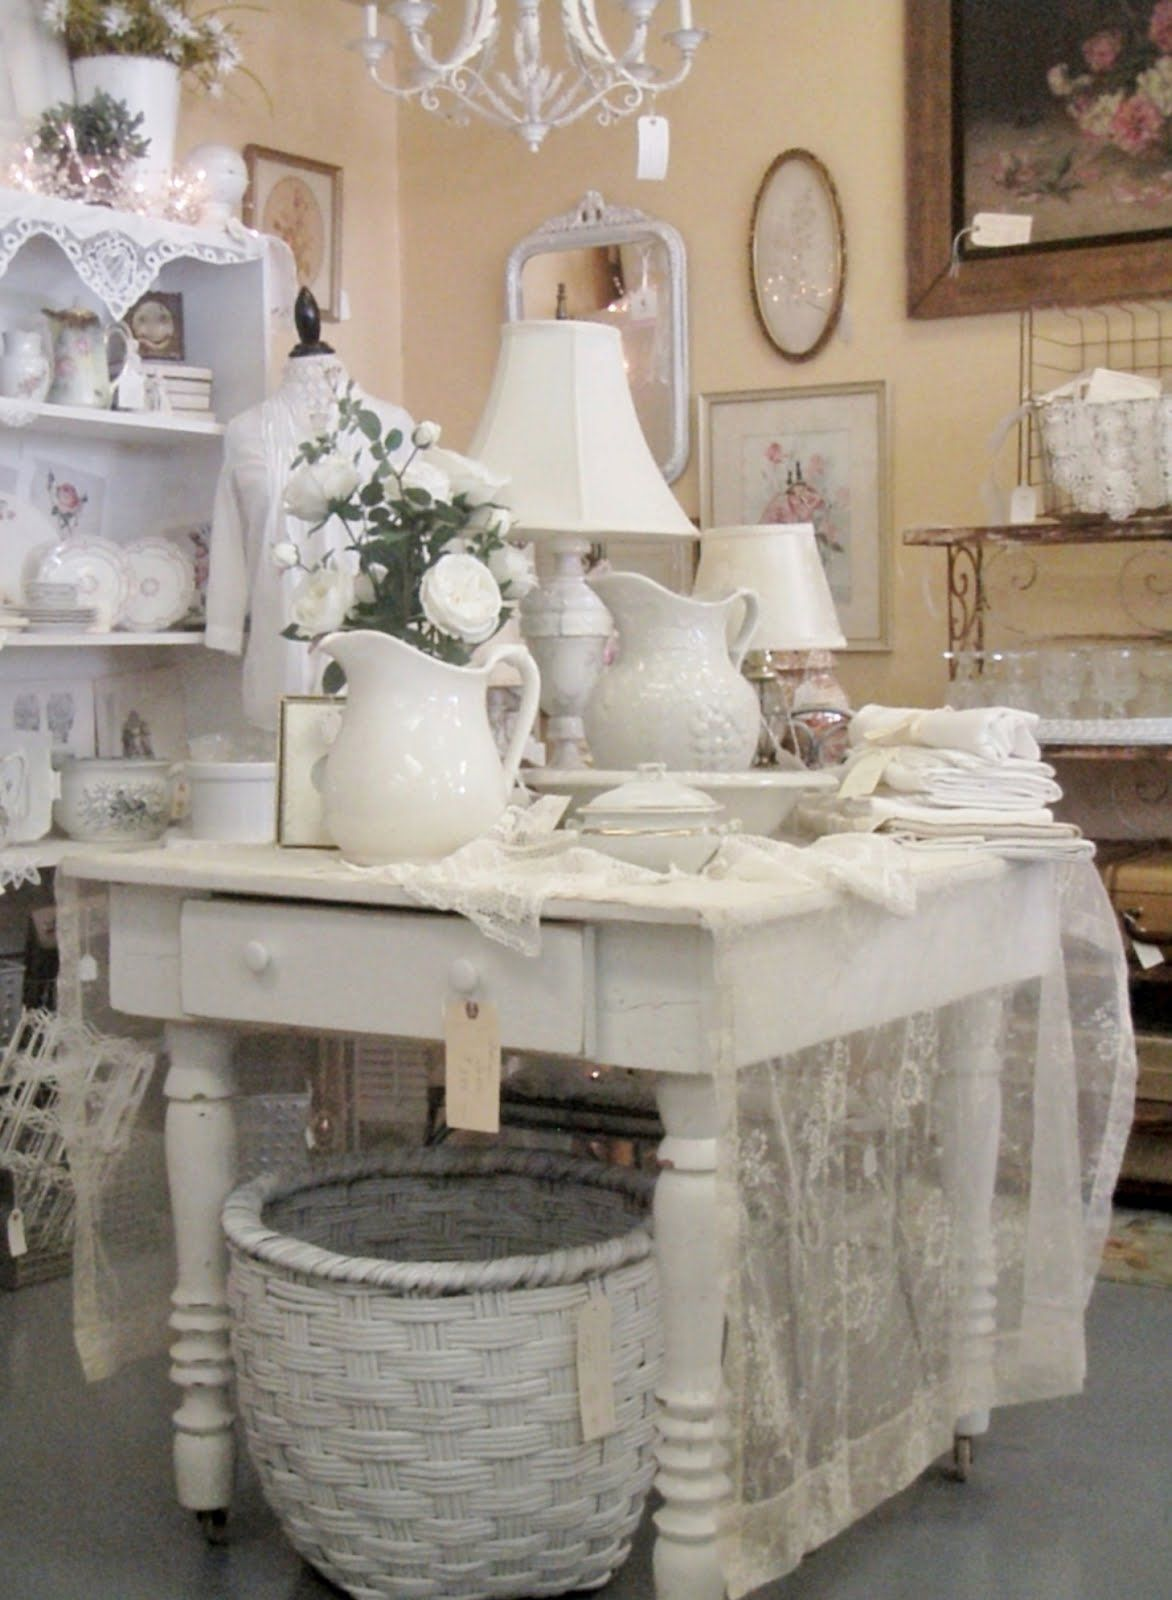 Shabby Chic Shop Around The Shop | Shabby Chic Shops, Shabby Chic Cottage ...